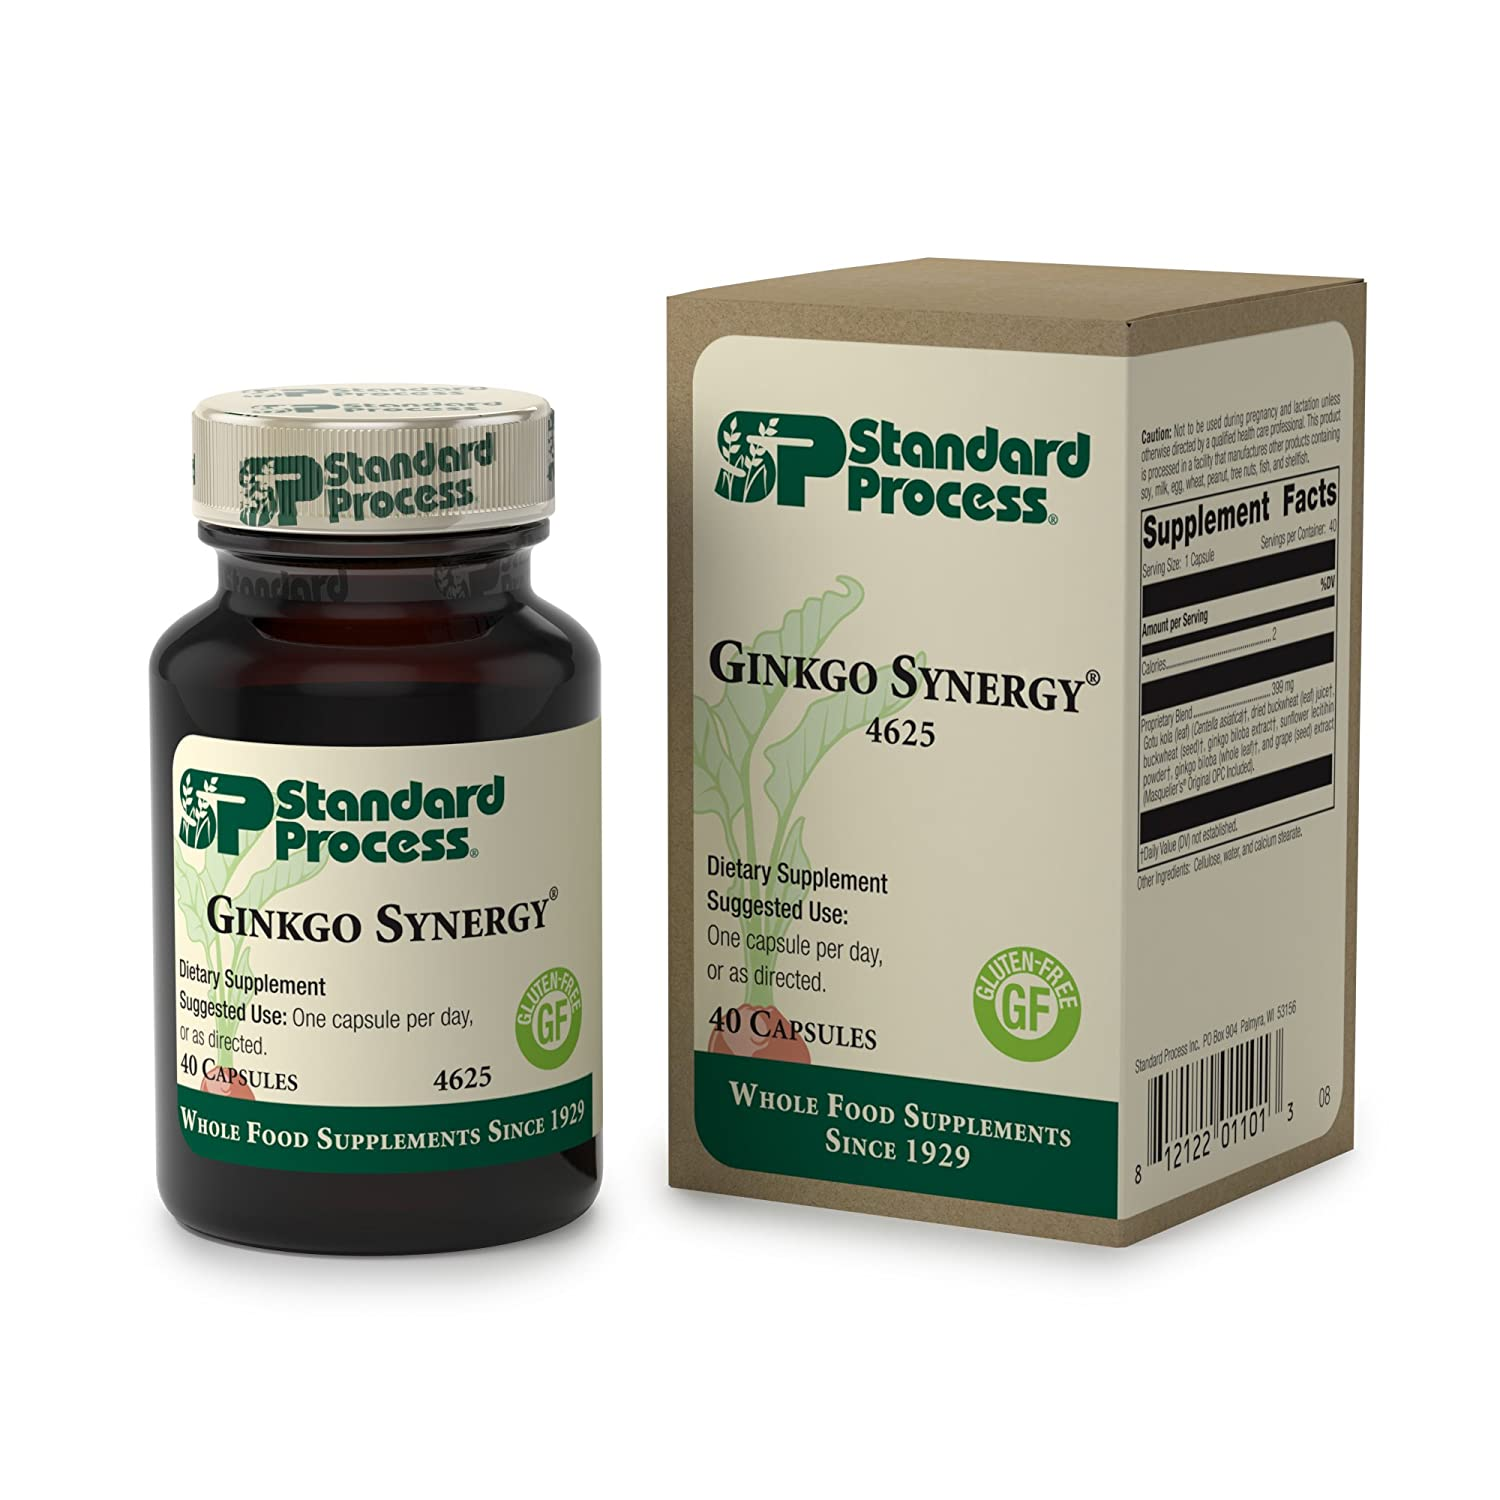 Standard Process – Ginkgo Synergy – Ginkgo Biloba Supplement, Supports Healthy Brain Function and Cognition, Promotes Antioxidant Activity, Gluten Free and Vegetarian – 40 Capsules